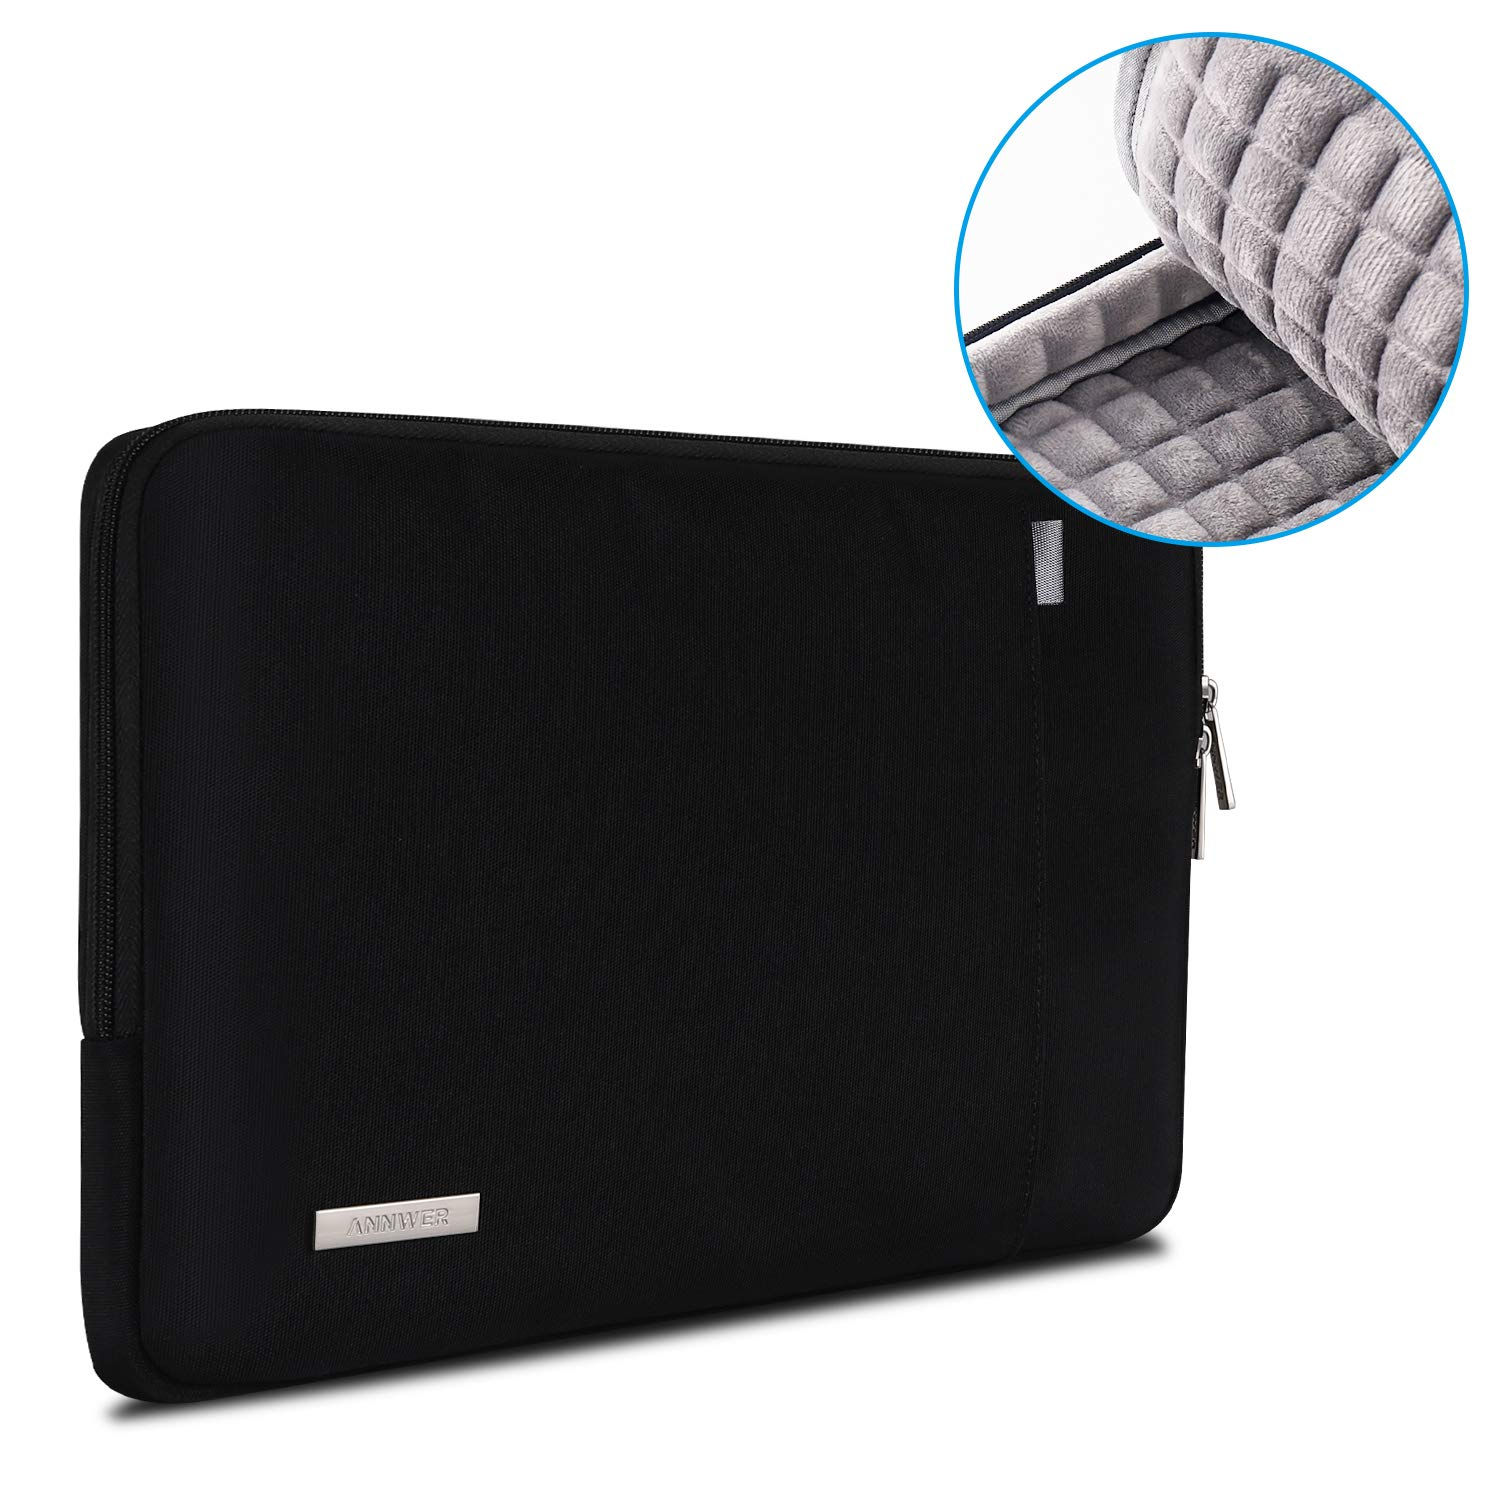 13 Inch New MacBook Pro for A2159 A1989 A1706 A1708 Annwer 360 Protective Laptop Sleeve with Accessory Pocket for 13-inch New MacBook Air with Retina Display A1932 12.9 New iPad Pro